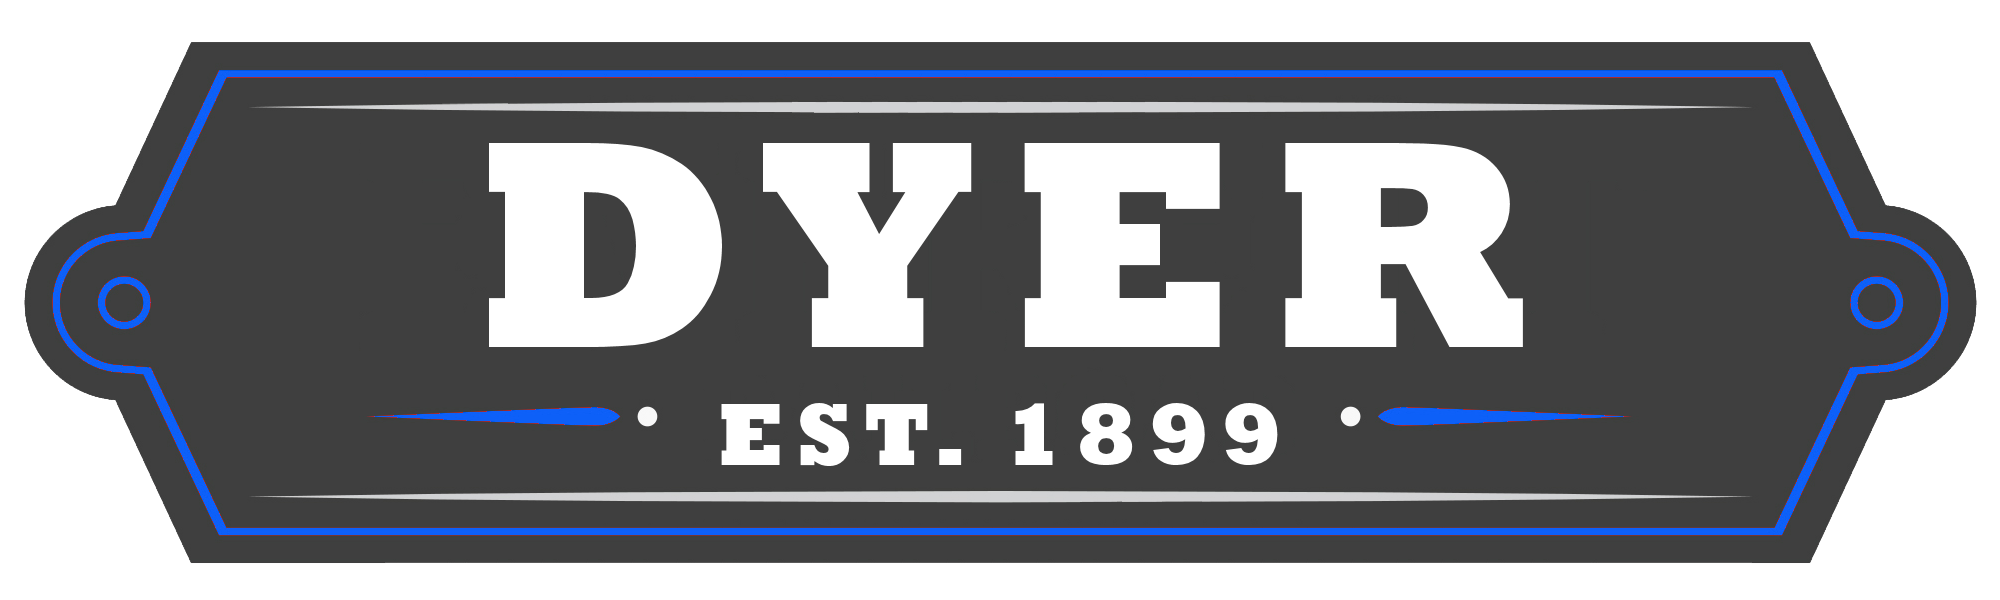 City of Dyer